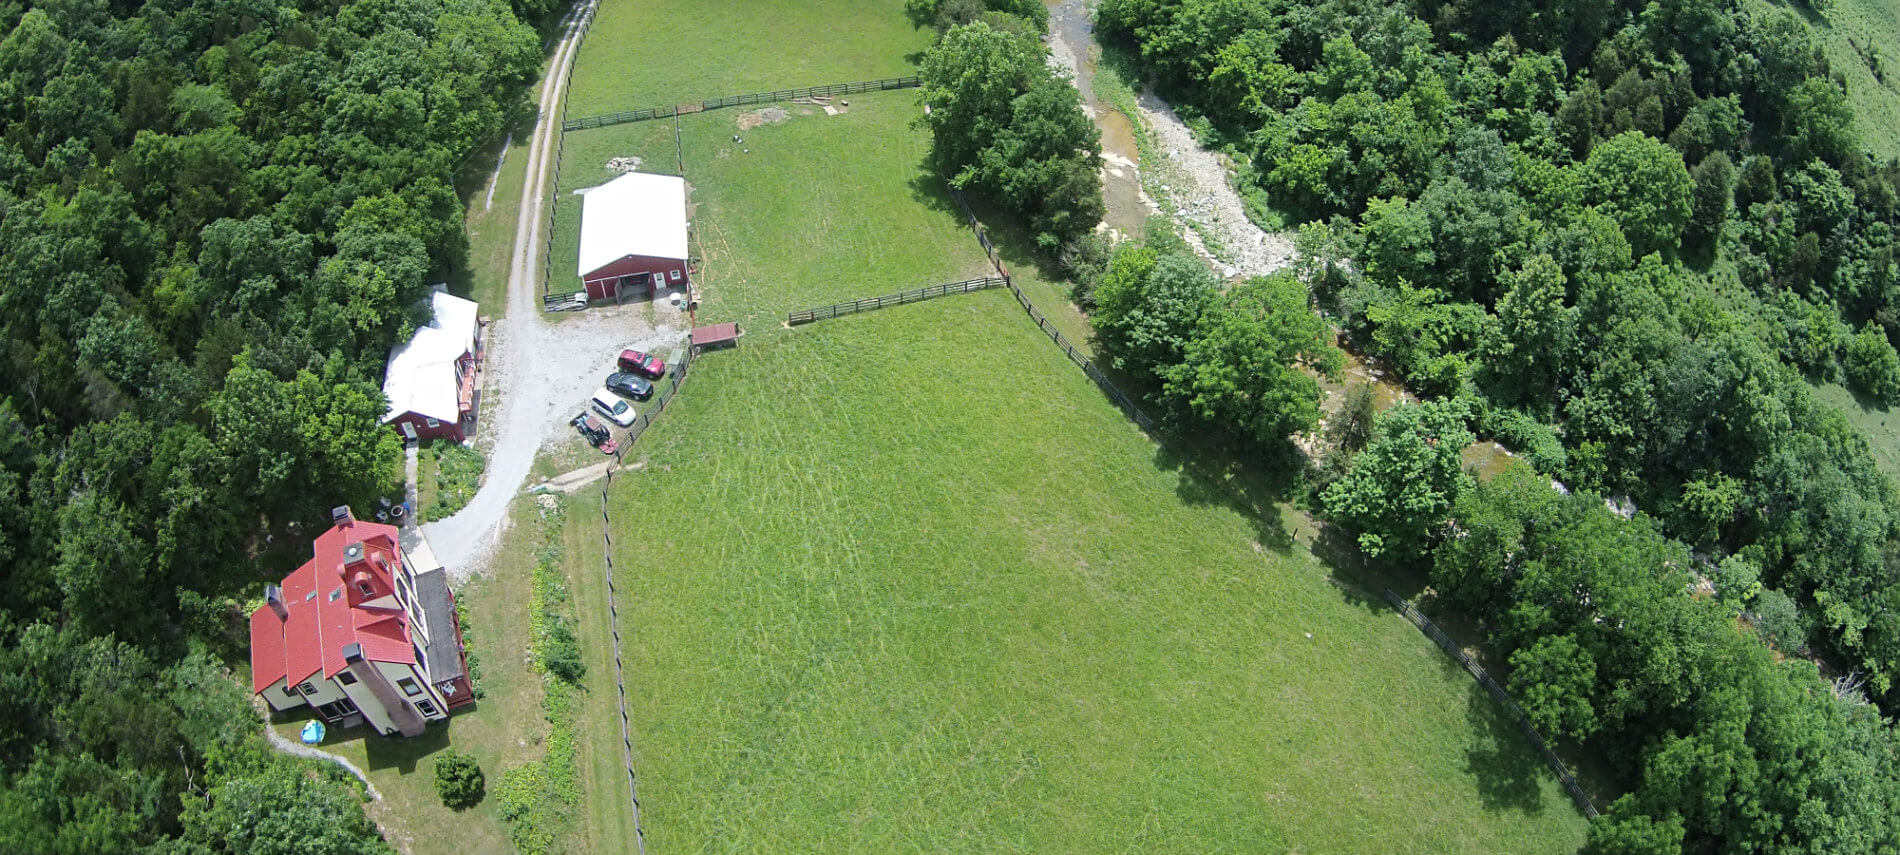 Arial view of the farm shows fenced green paddocks and the outline of the Otter Creek